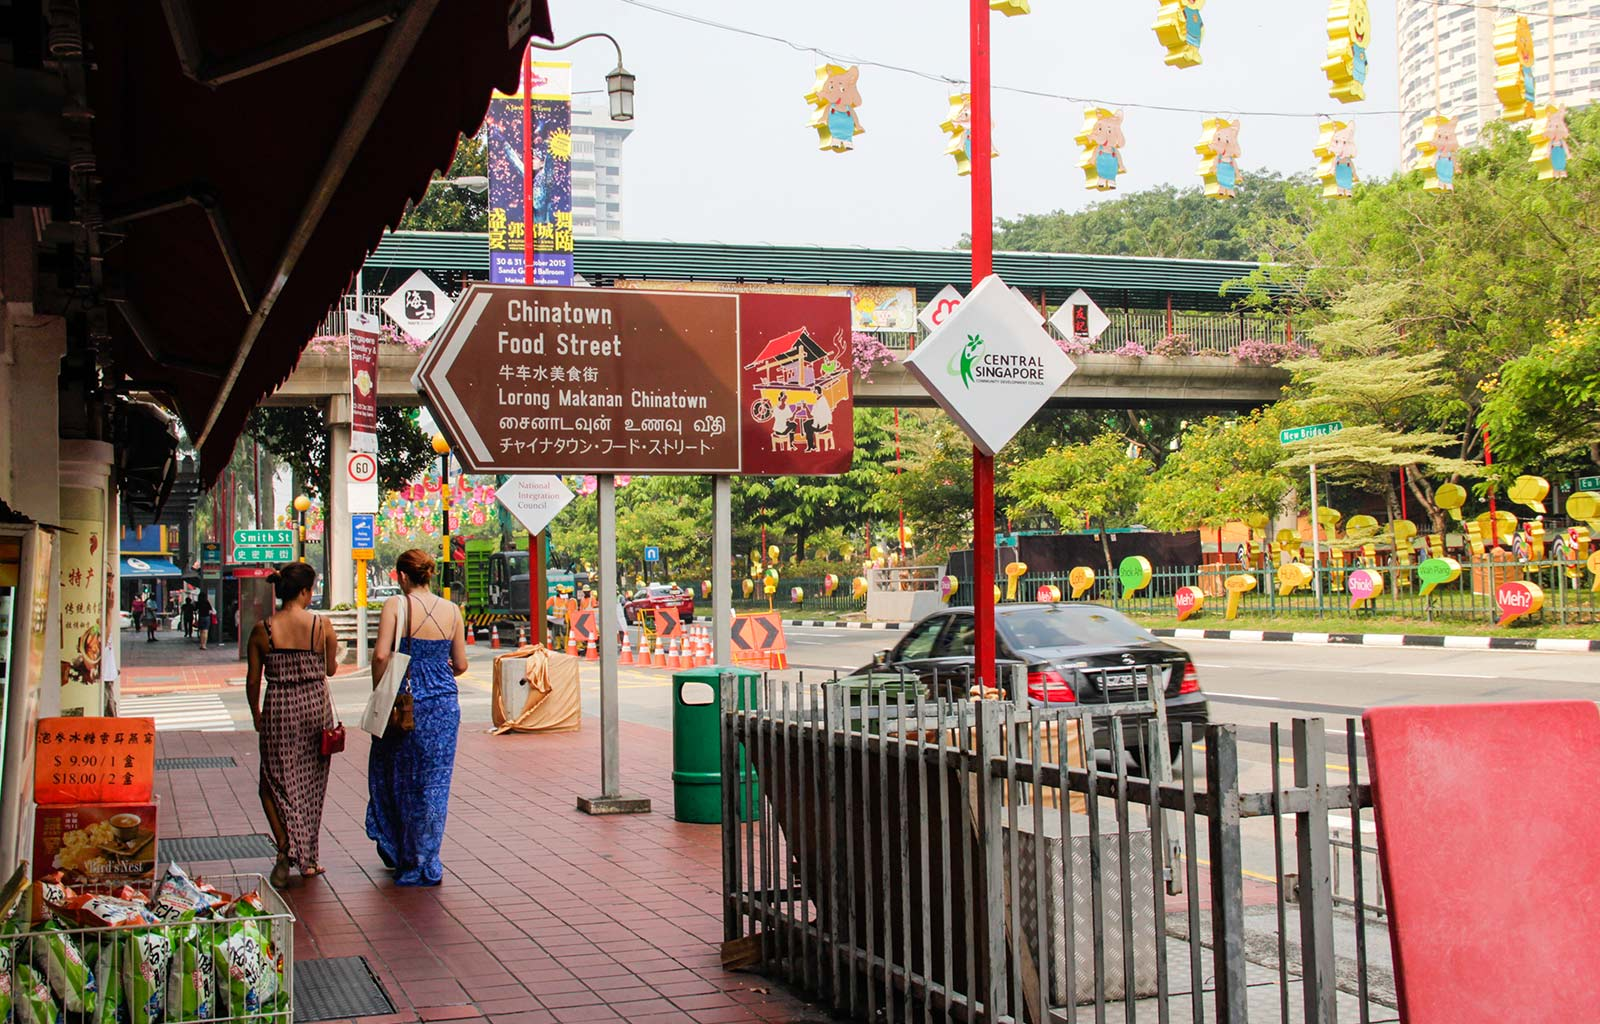 trip to singapore Book your tickets online for the top things to do in singapore, singapore on tripadvisor: see 336,968 traveller reviews and photos of singapore tourist attractions.